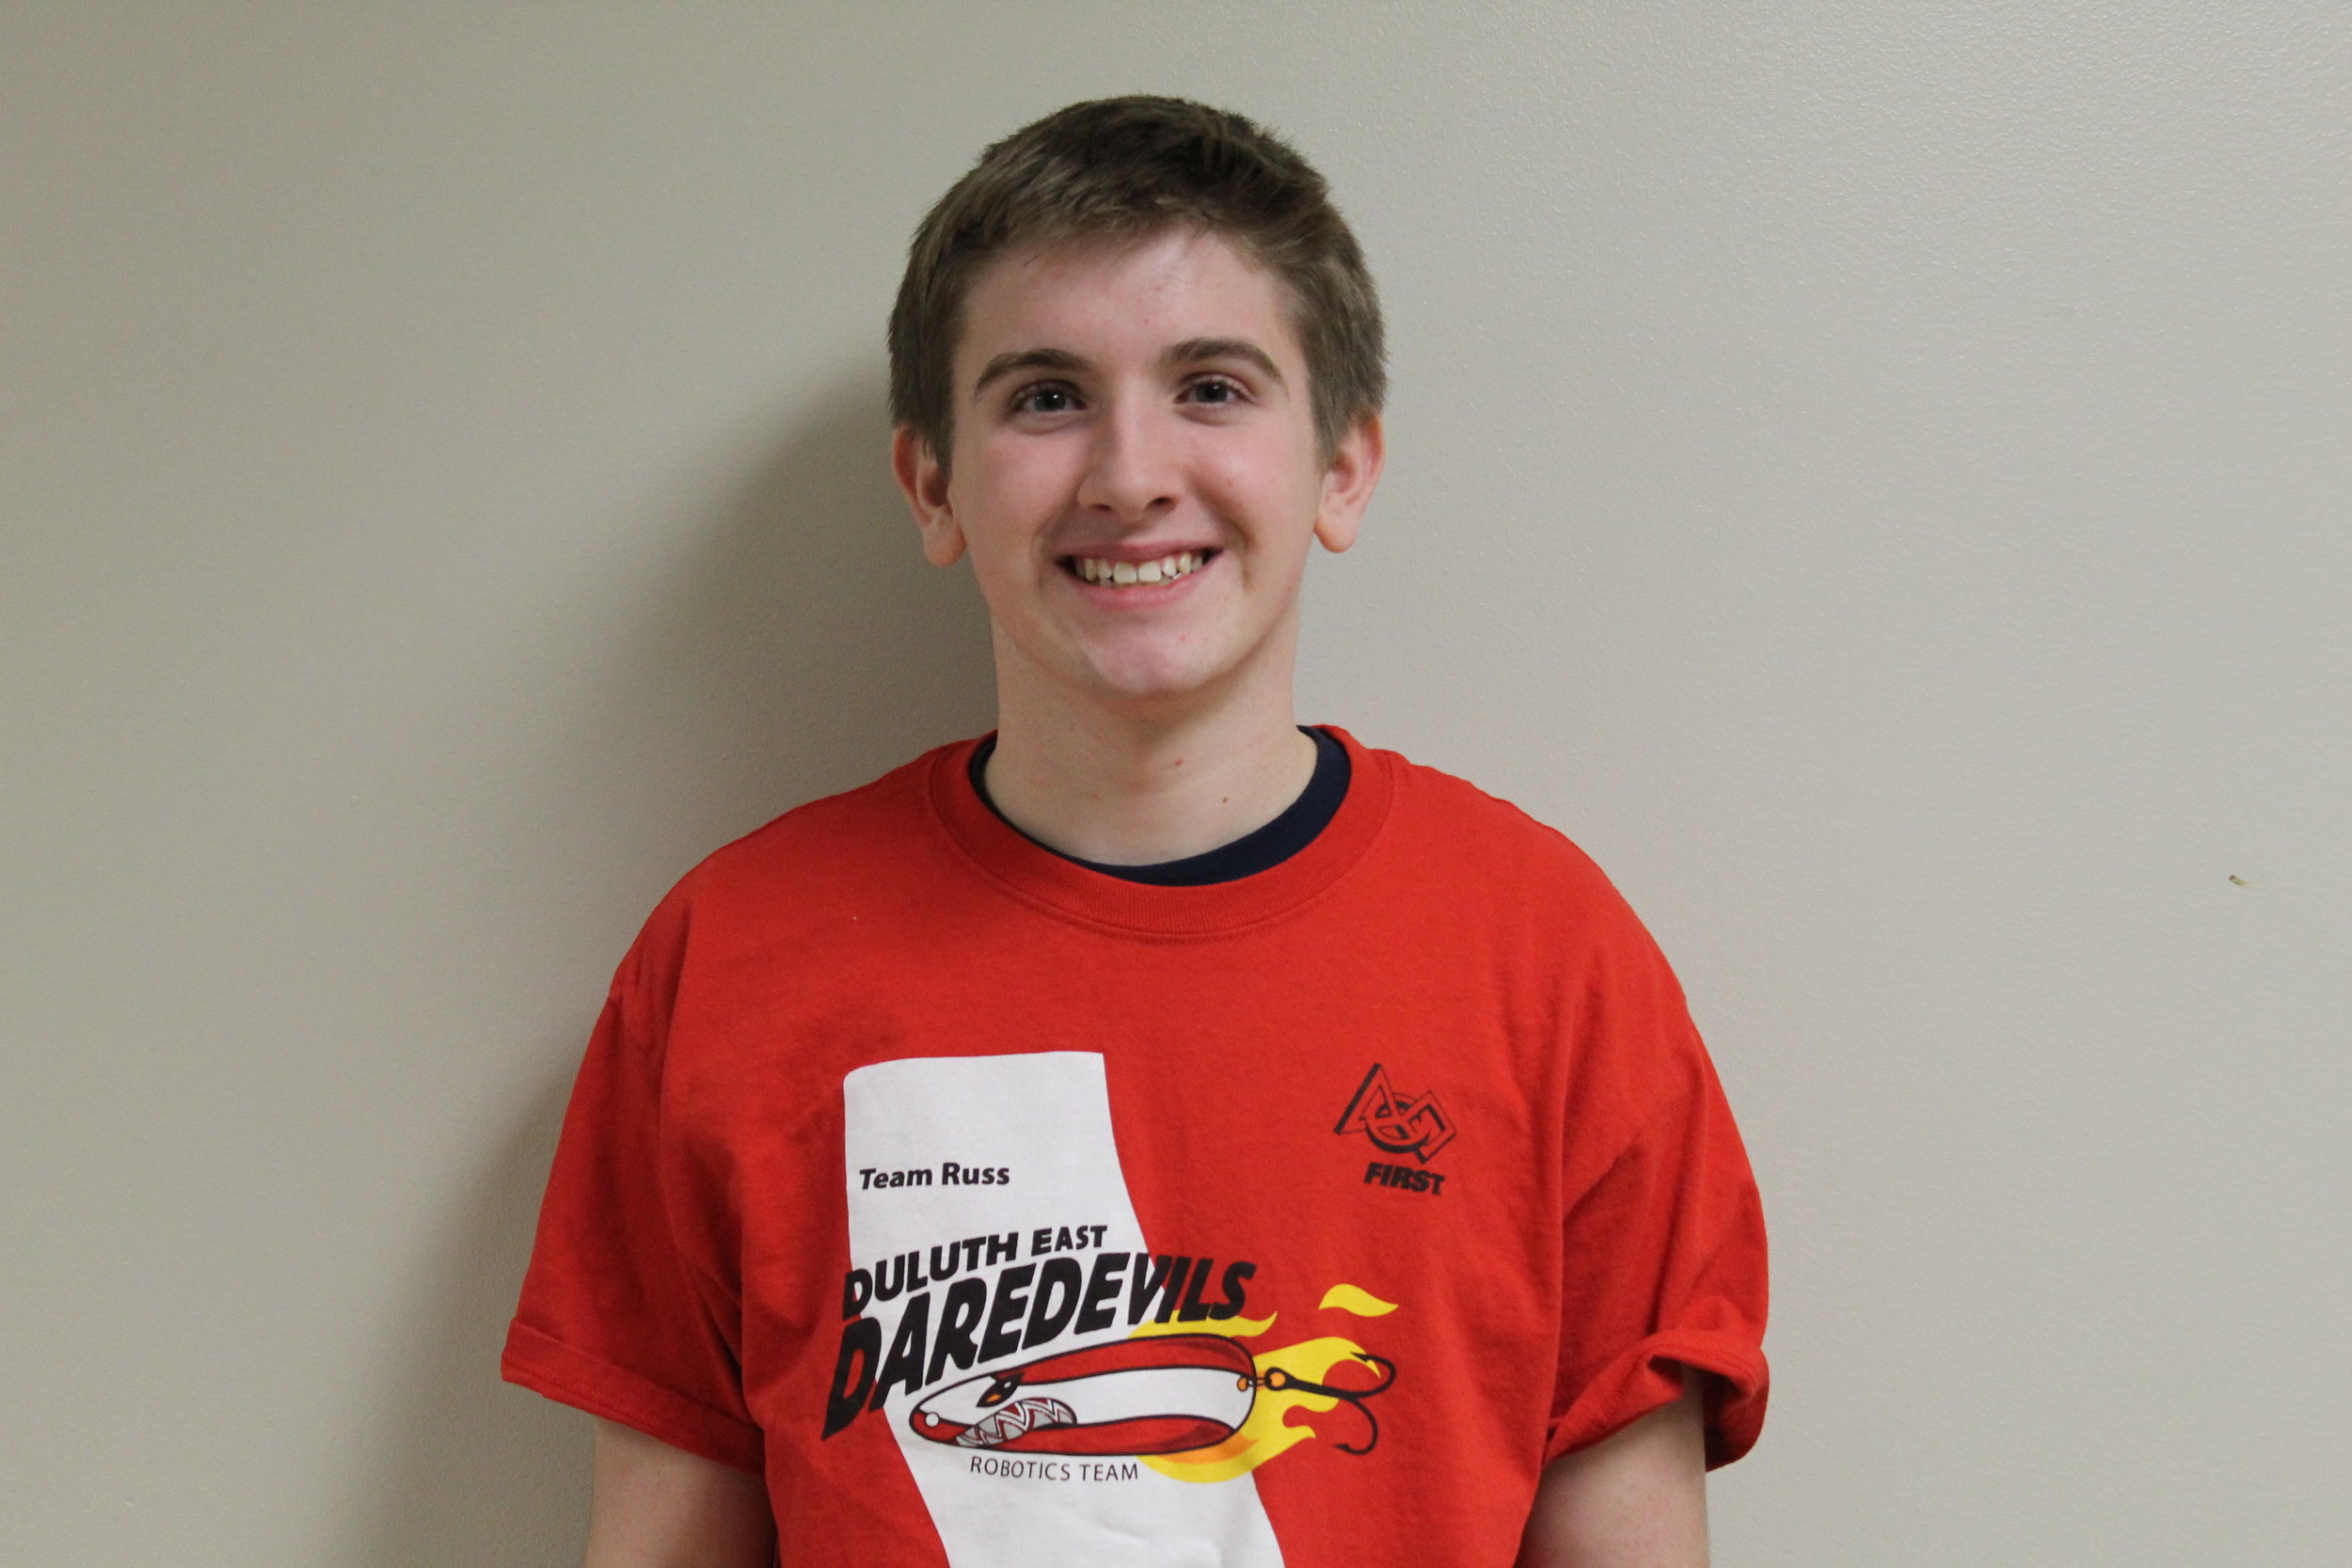 Daniel n. - Daniel is a sophmoreat East, and this is his second year on the team. He loves the show